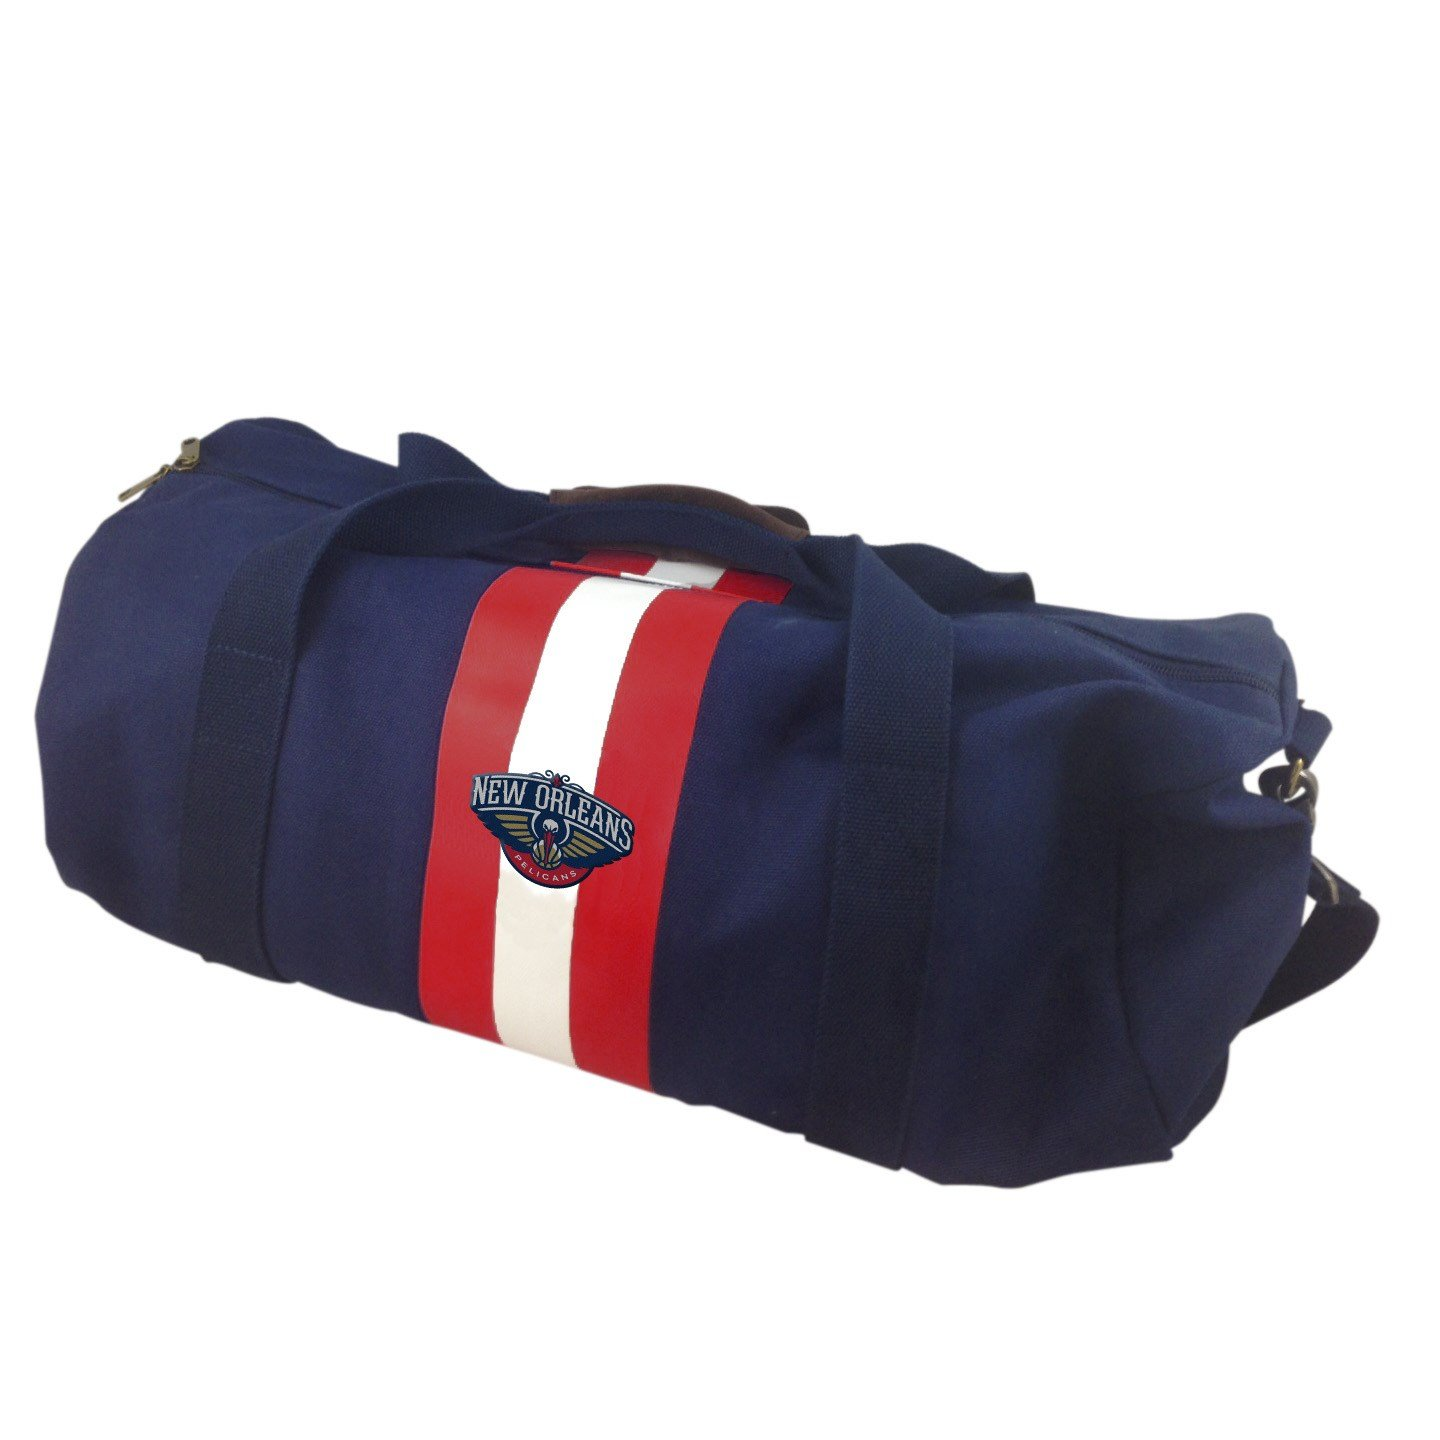 NBA New Orleans Pelicans Blue Rugby Duffel Bag by Pangea Brands (Image #1)